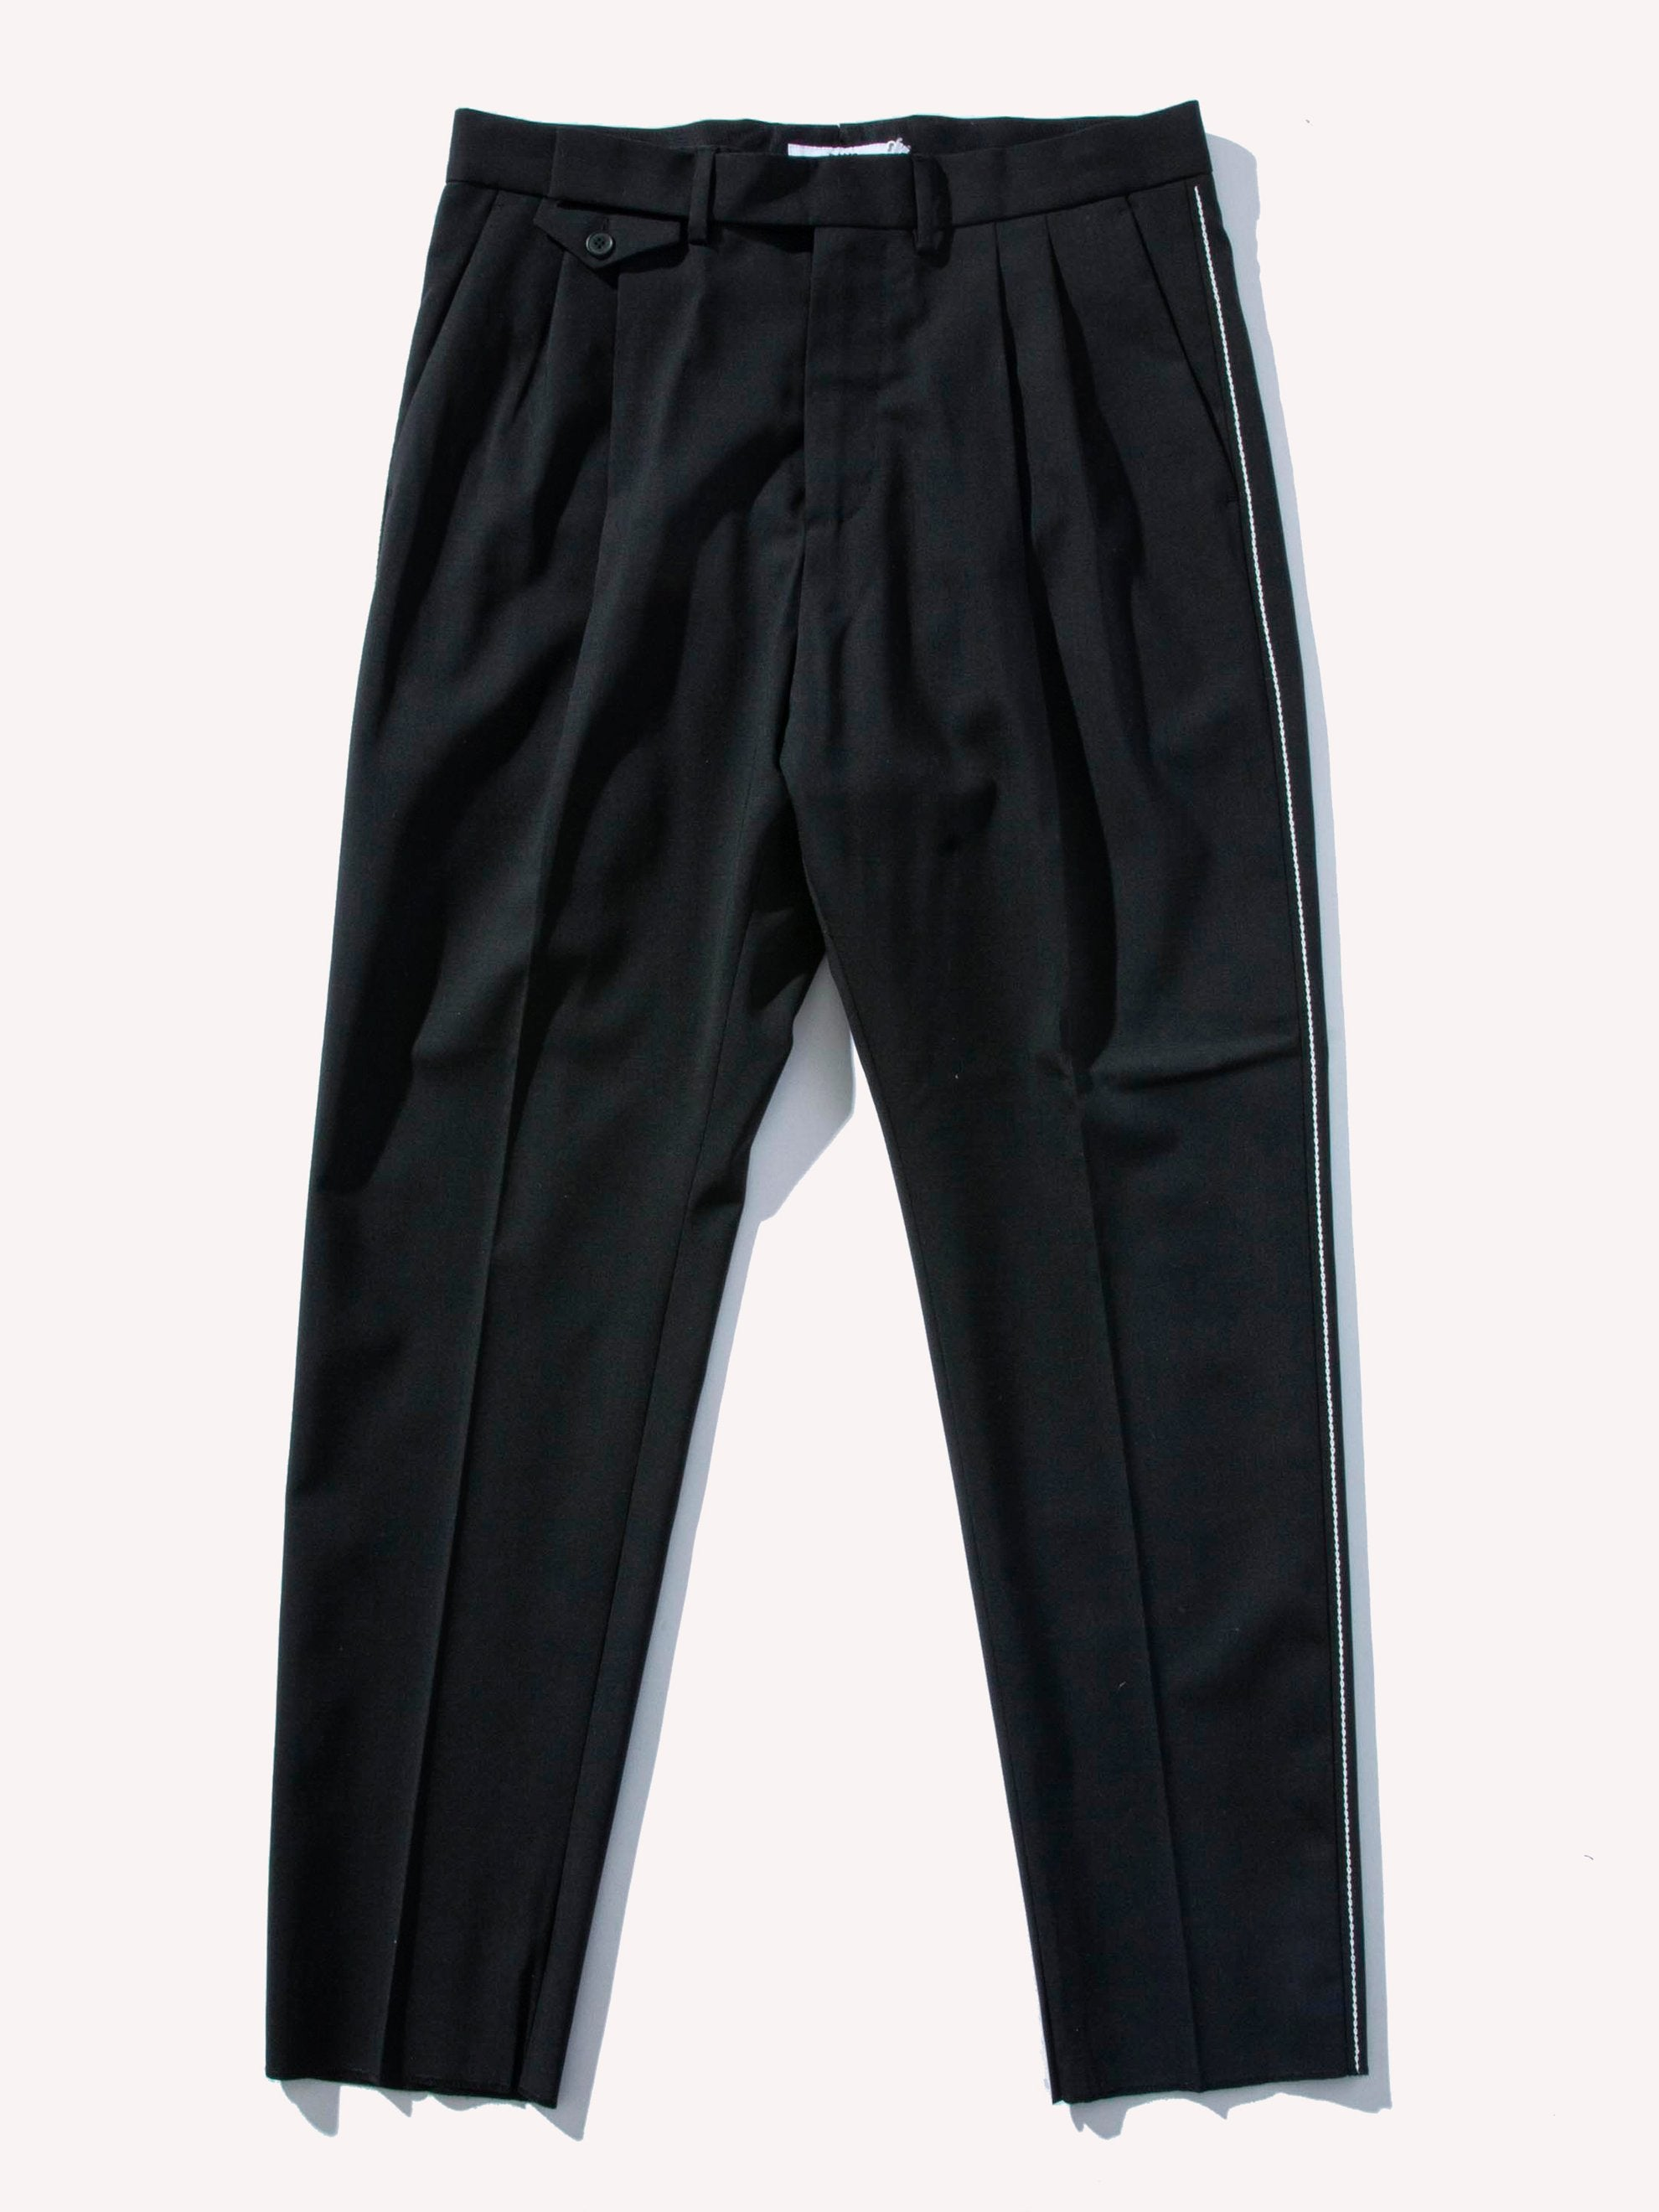 Joe 2-Button Suit Pant